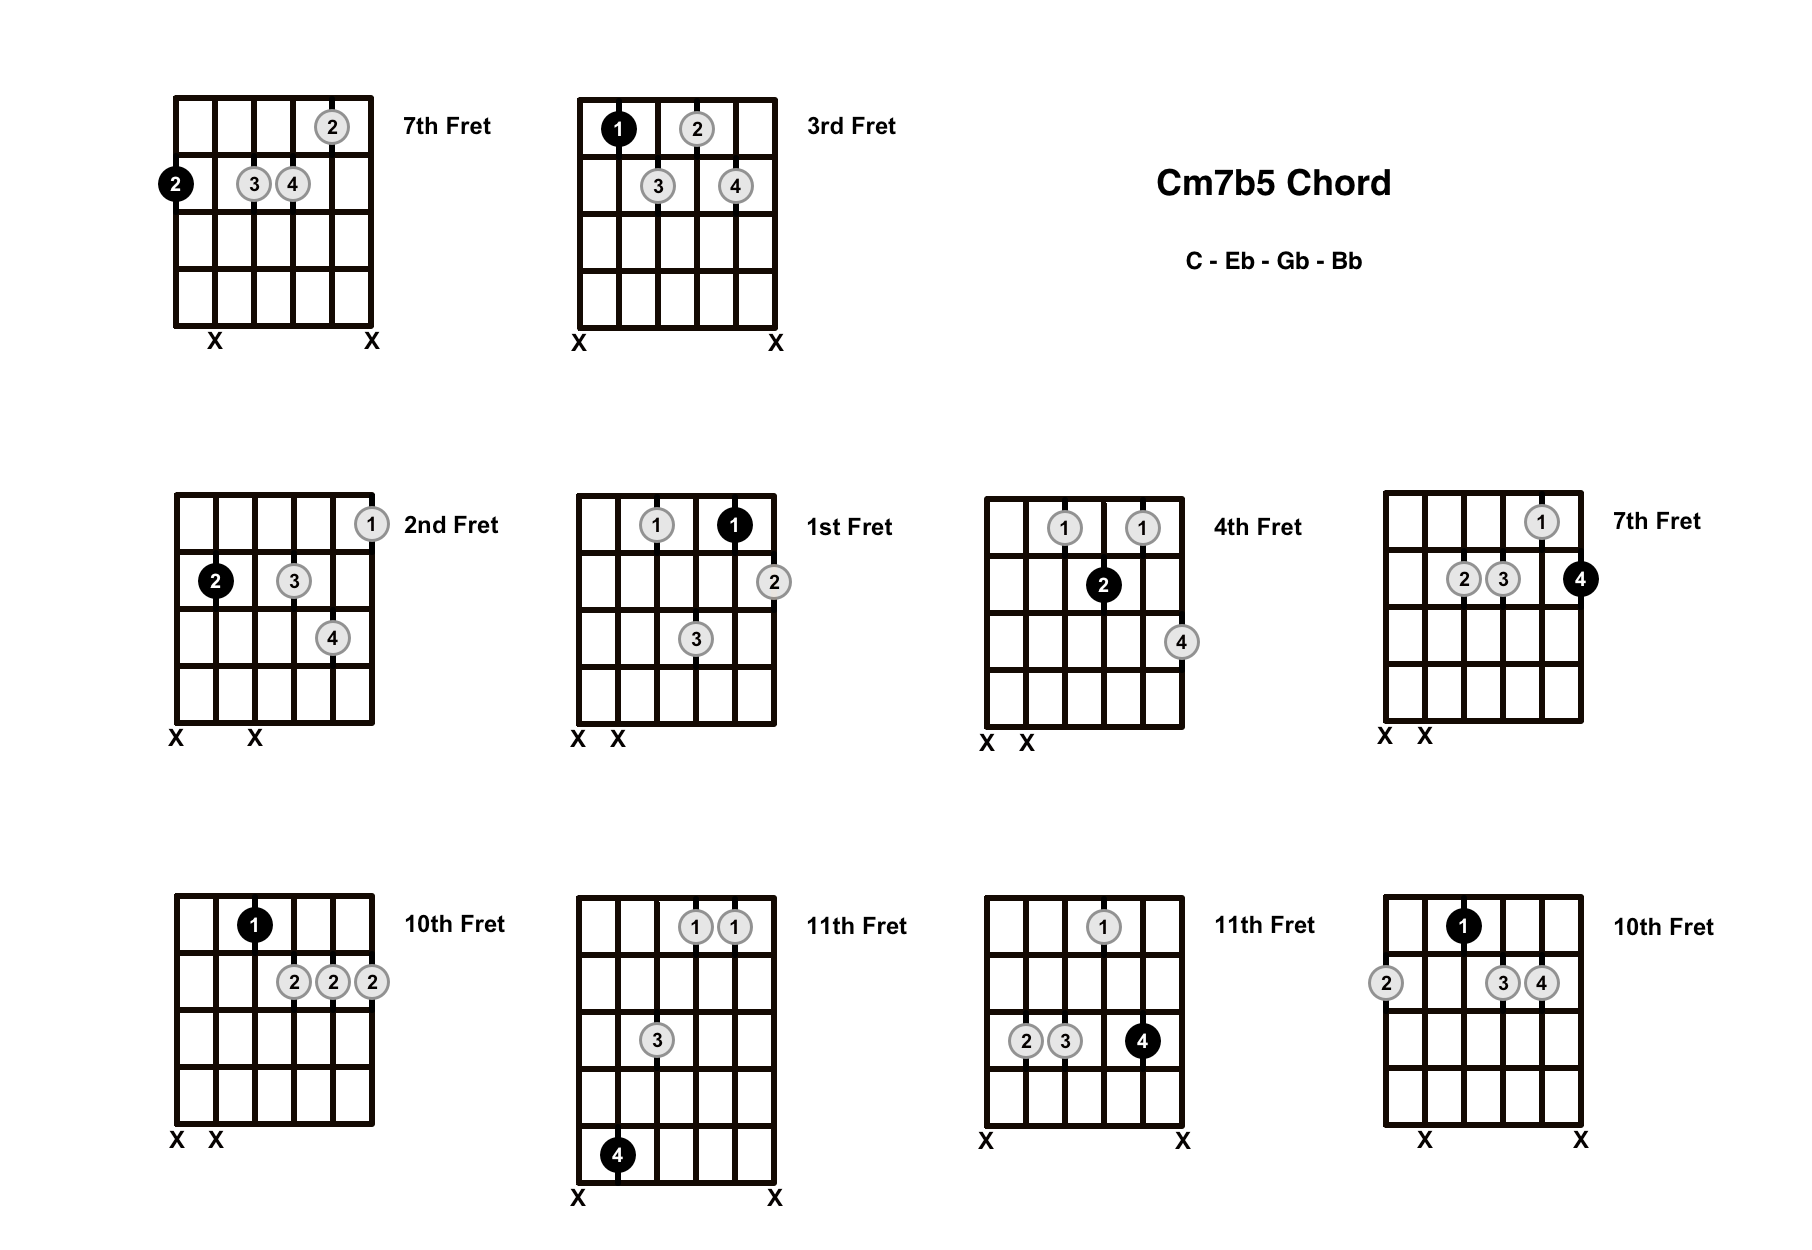 Cm7b5 Chord On The Guitar (C Minor 7 Flat 5, C Half Diminished) – Diagrams, Finger Positions and Theory